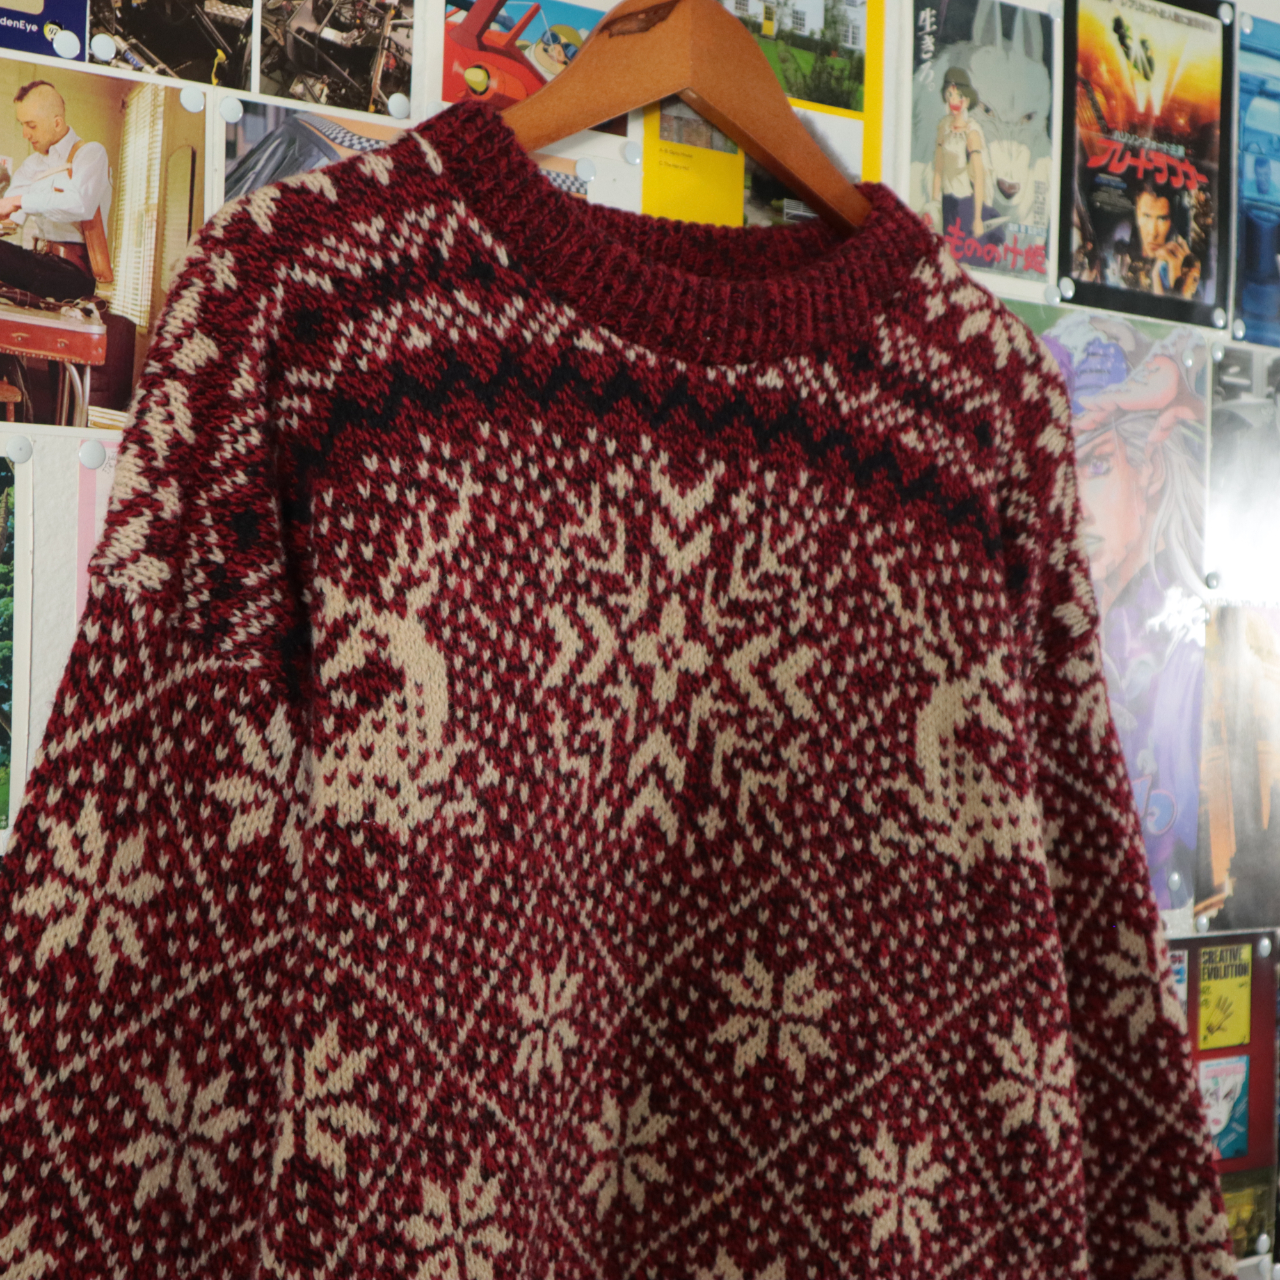 Product Image 1 - Vintage Knit Sweater  Size Large  Pit to